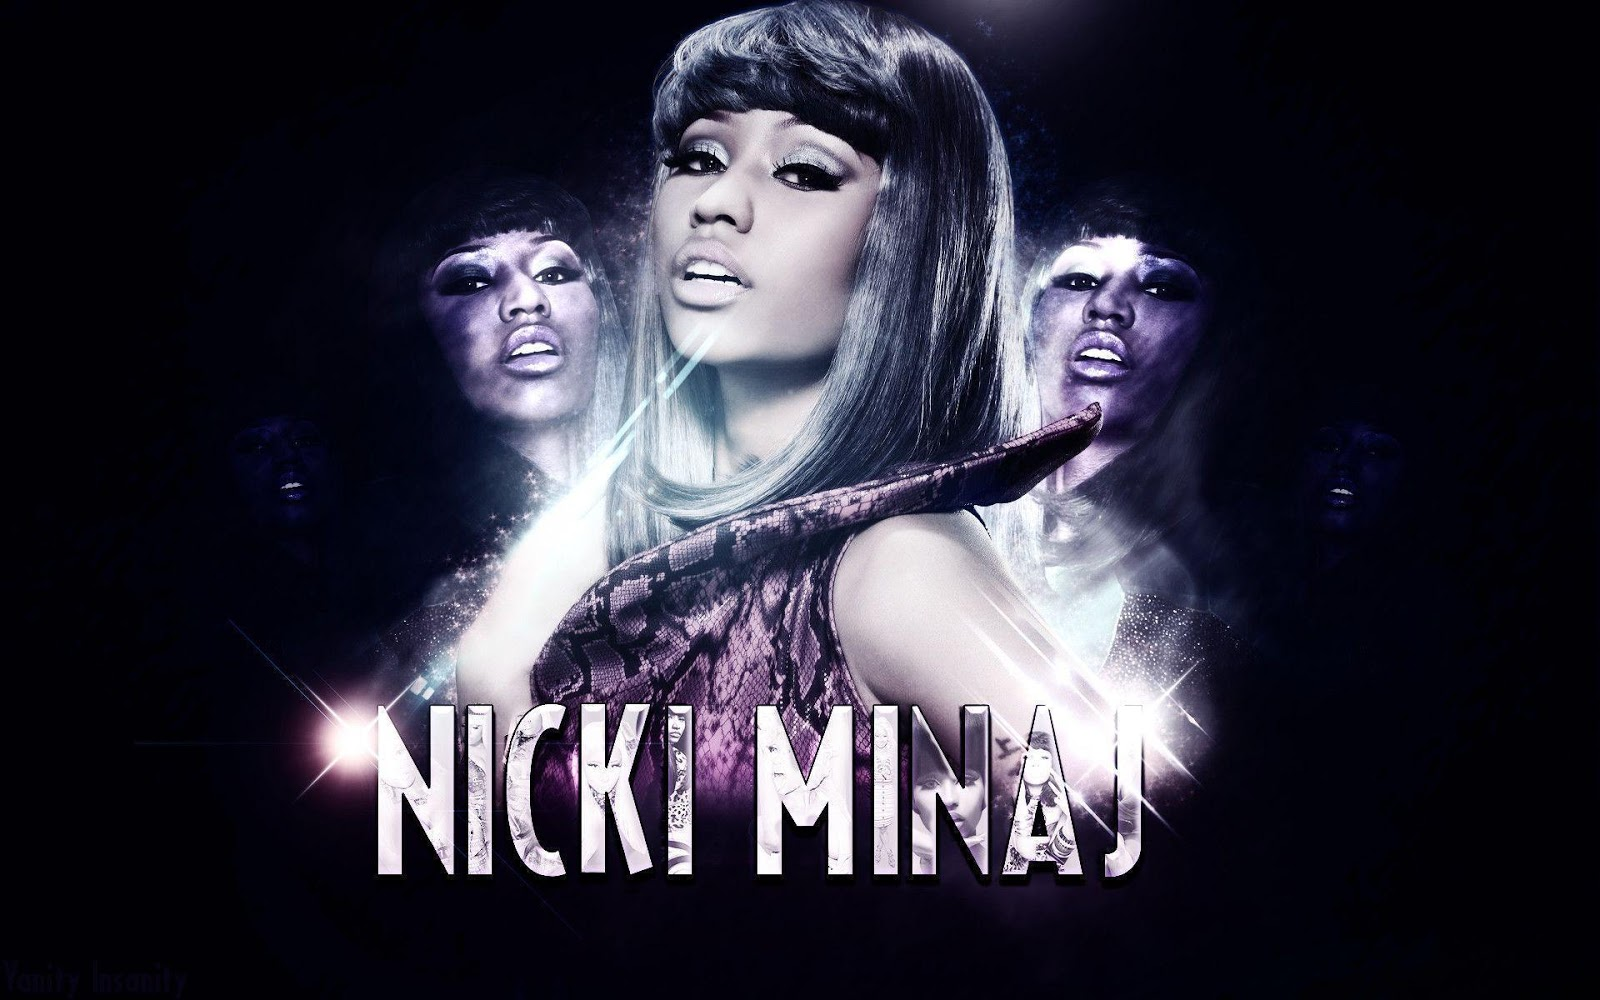 wallpapers Nicki Minaj Fonds